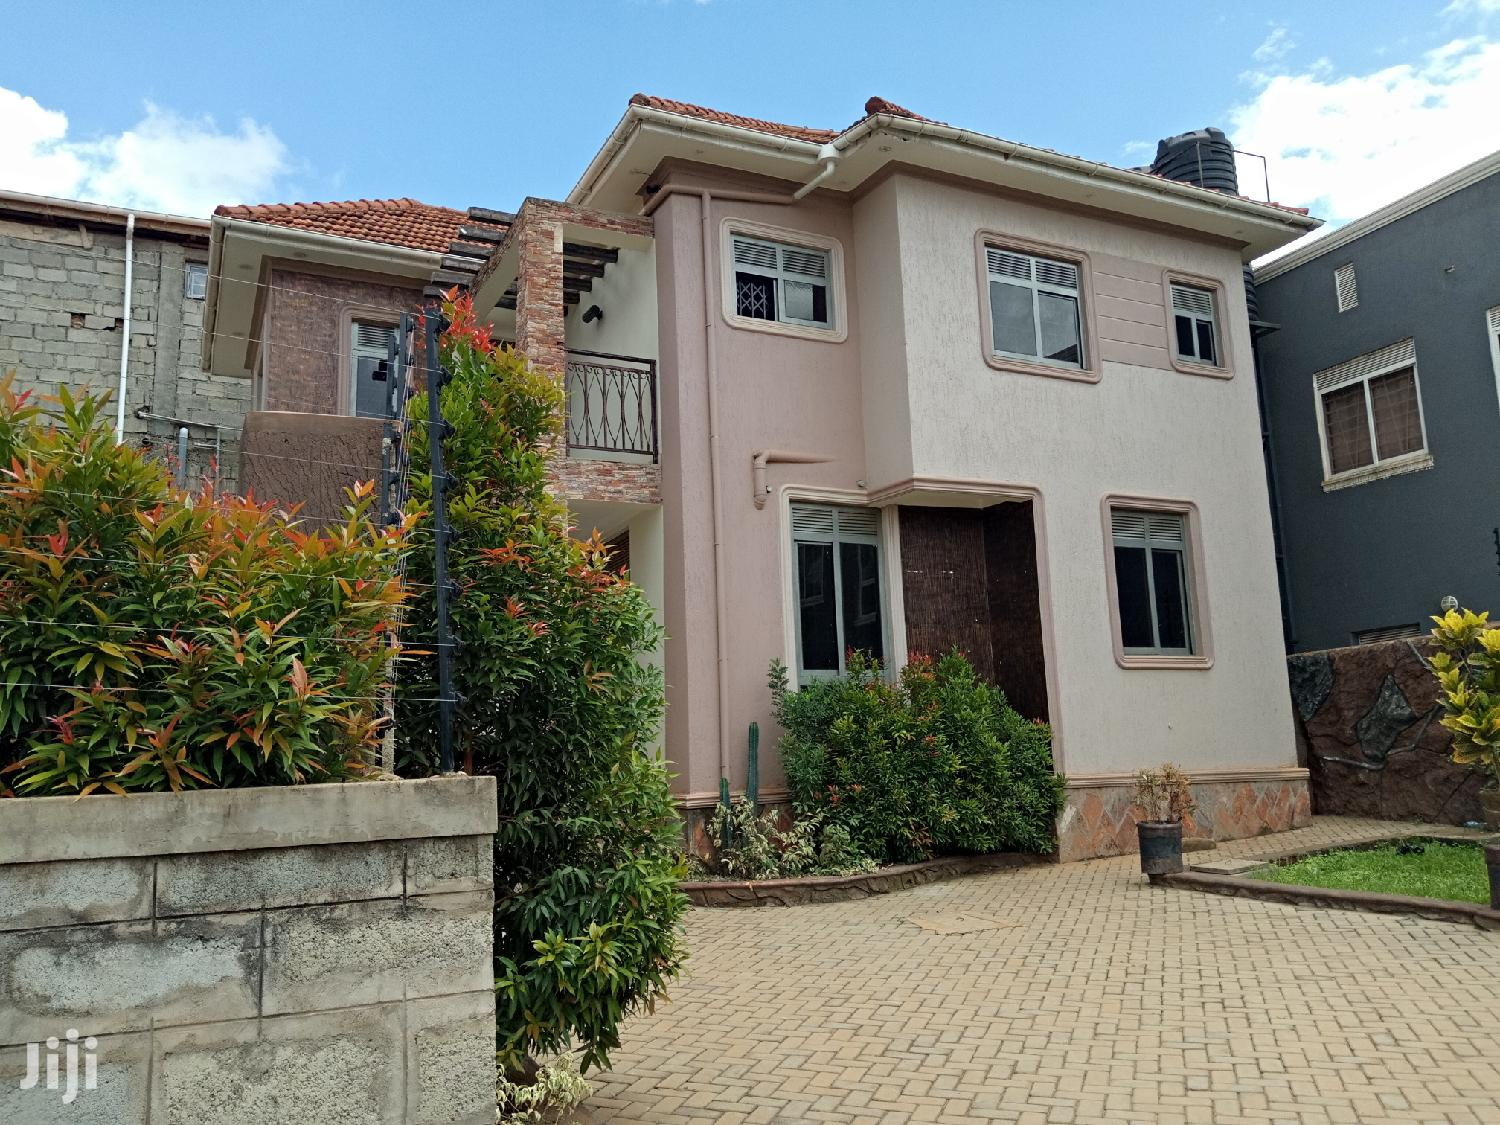 Kira Posh Castle For Sell In Tarmacked Neighborhood